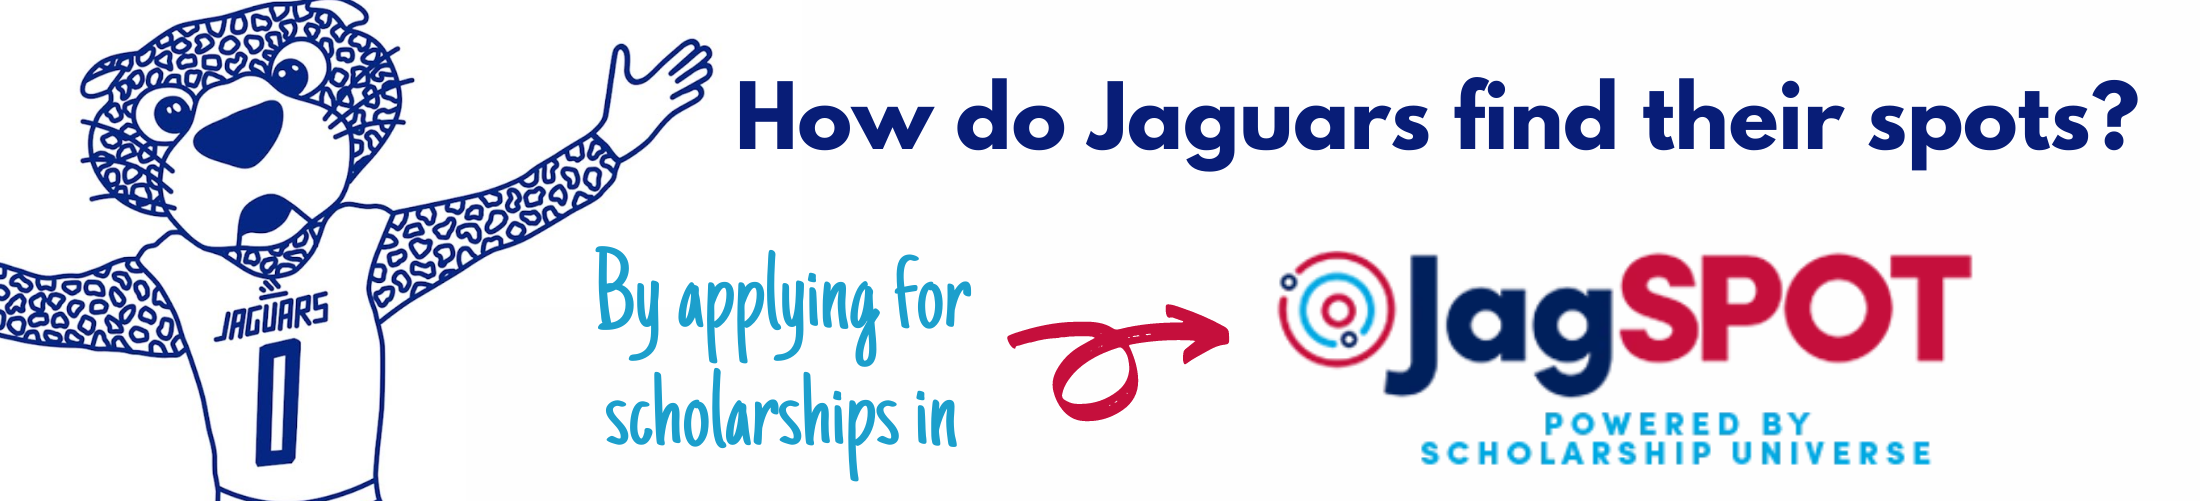 How do Jaguars find their spots? By applying for scholarships in JagSPOT Powered by Scholarship Universe